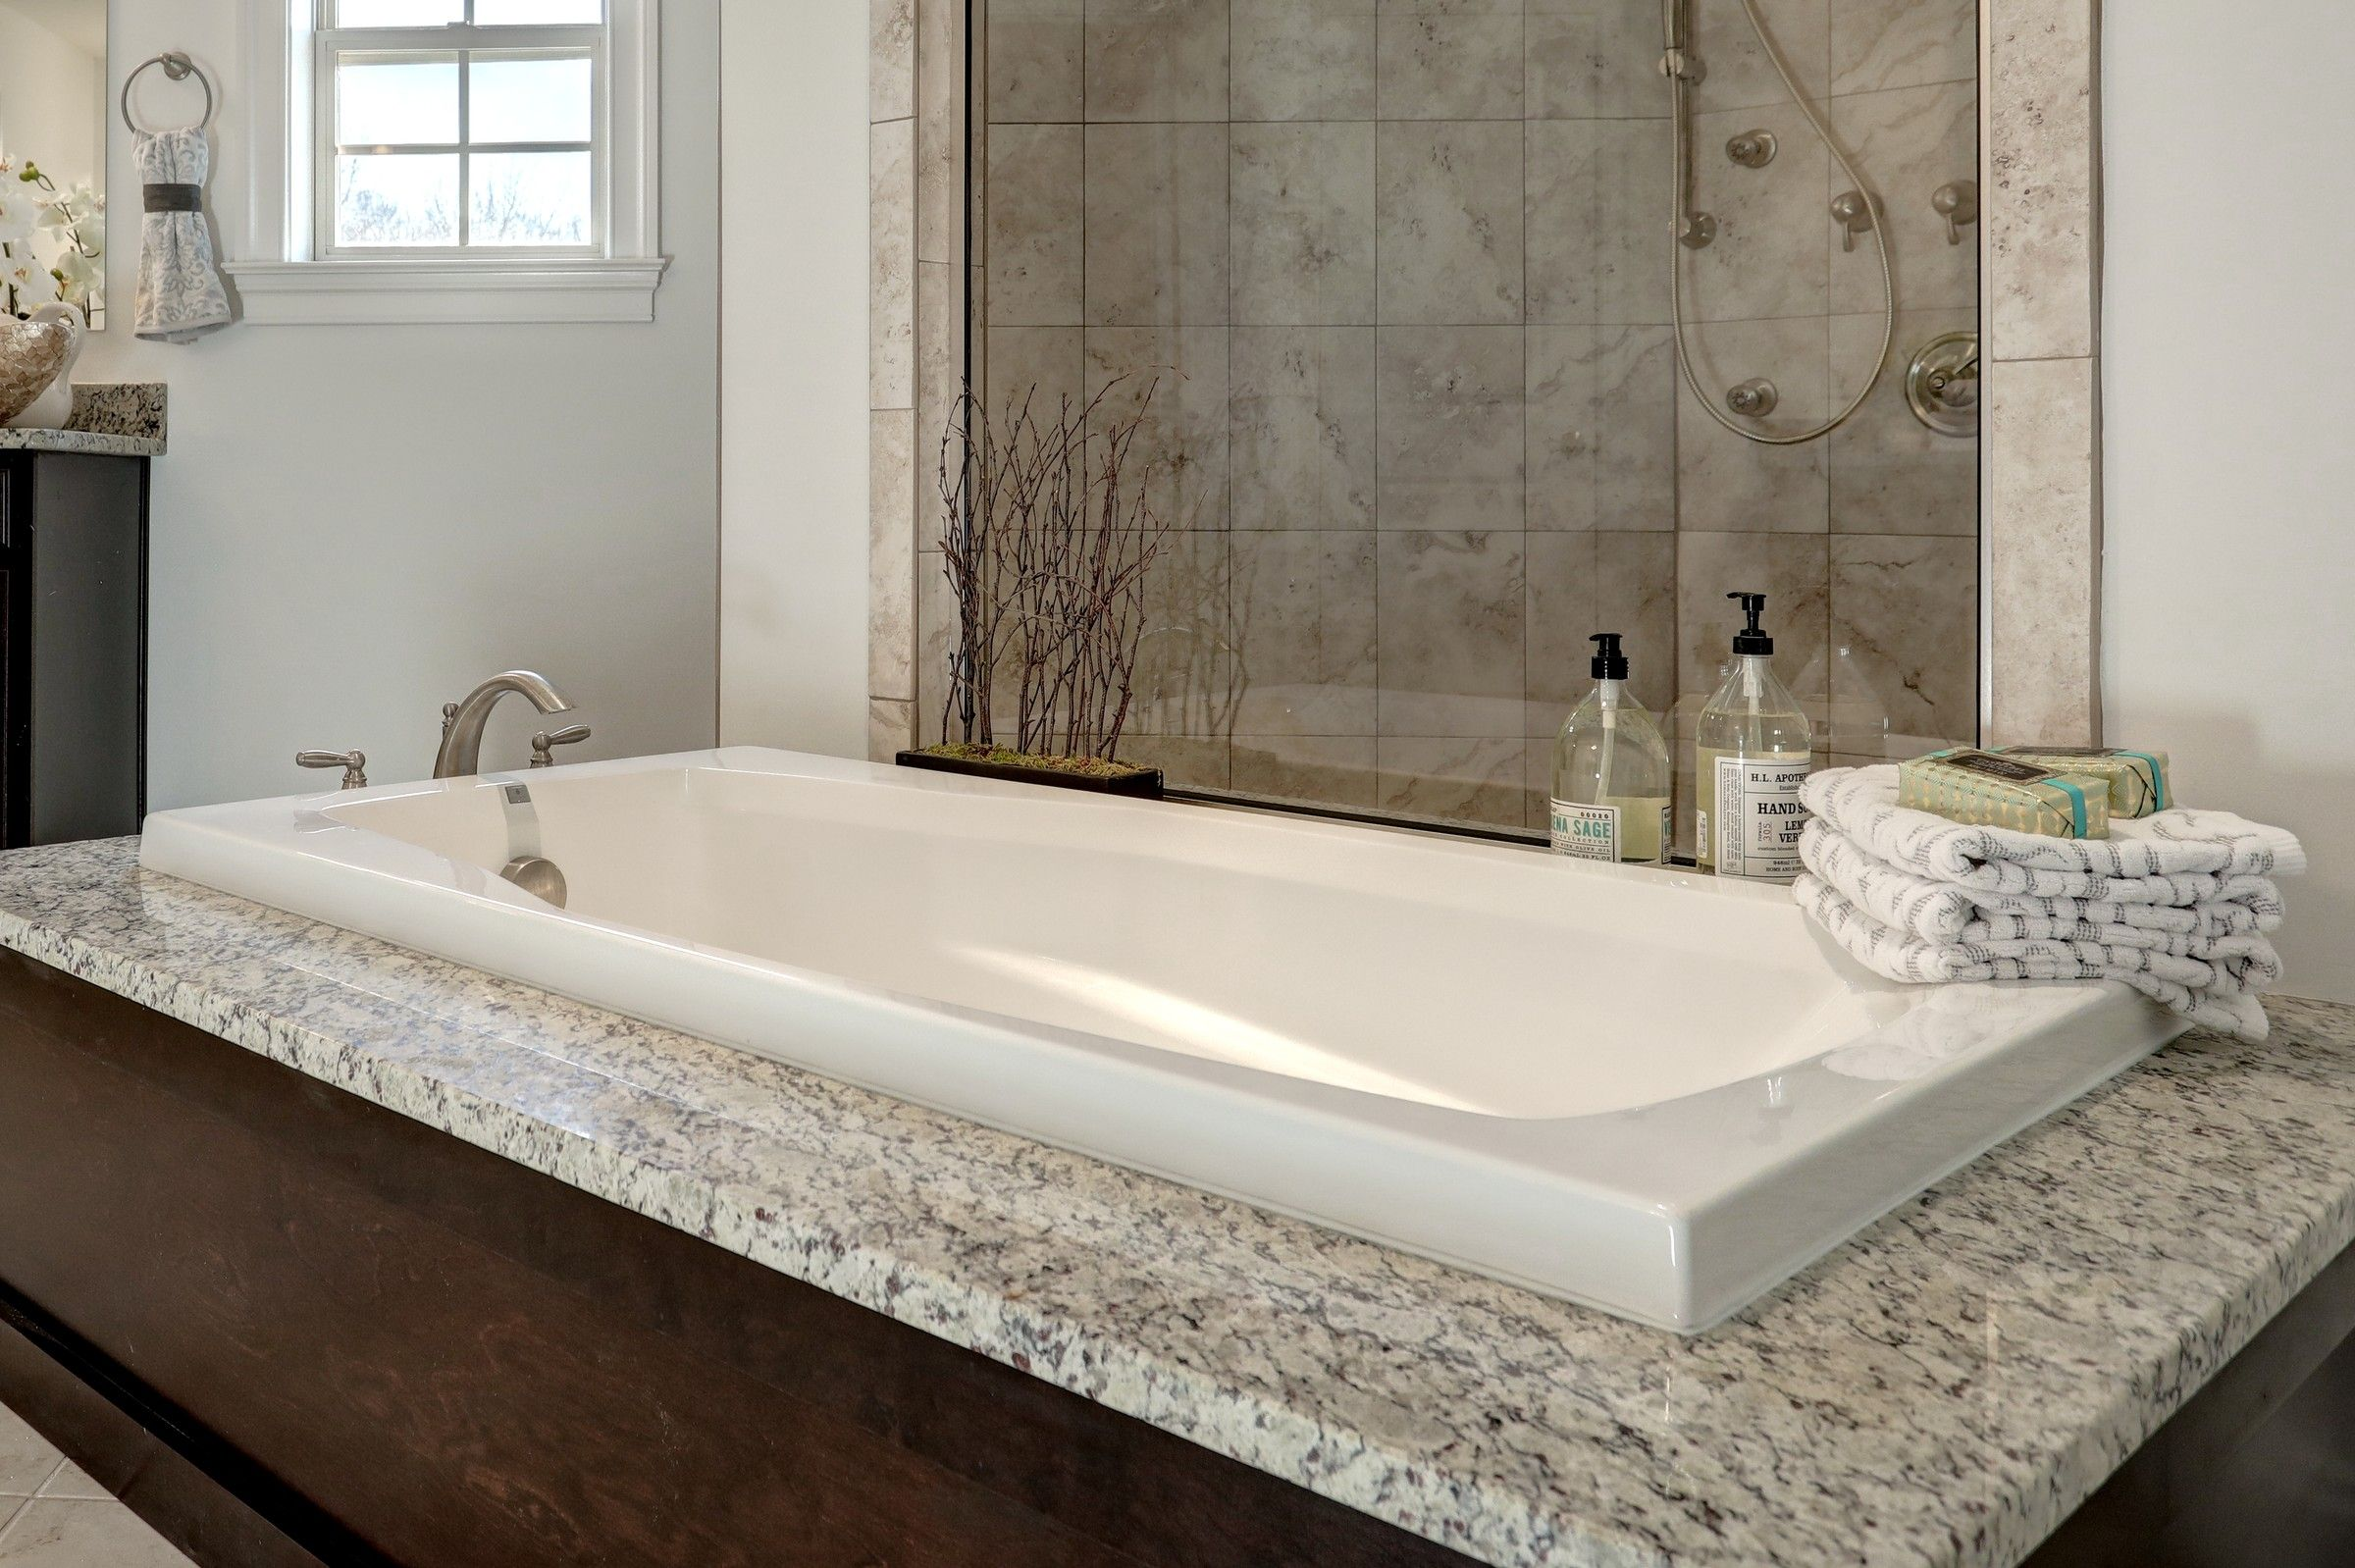 Bathroom featured in the Ethan Farmhouse By Keystone Custom Homes in Baltimore, MD